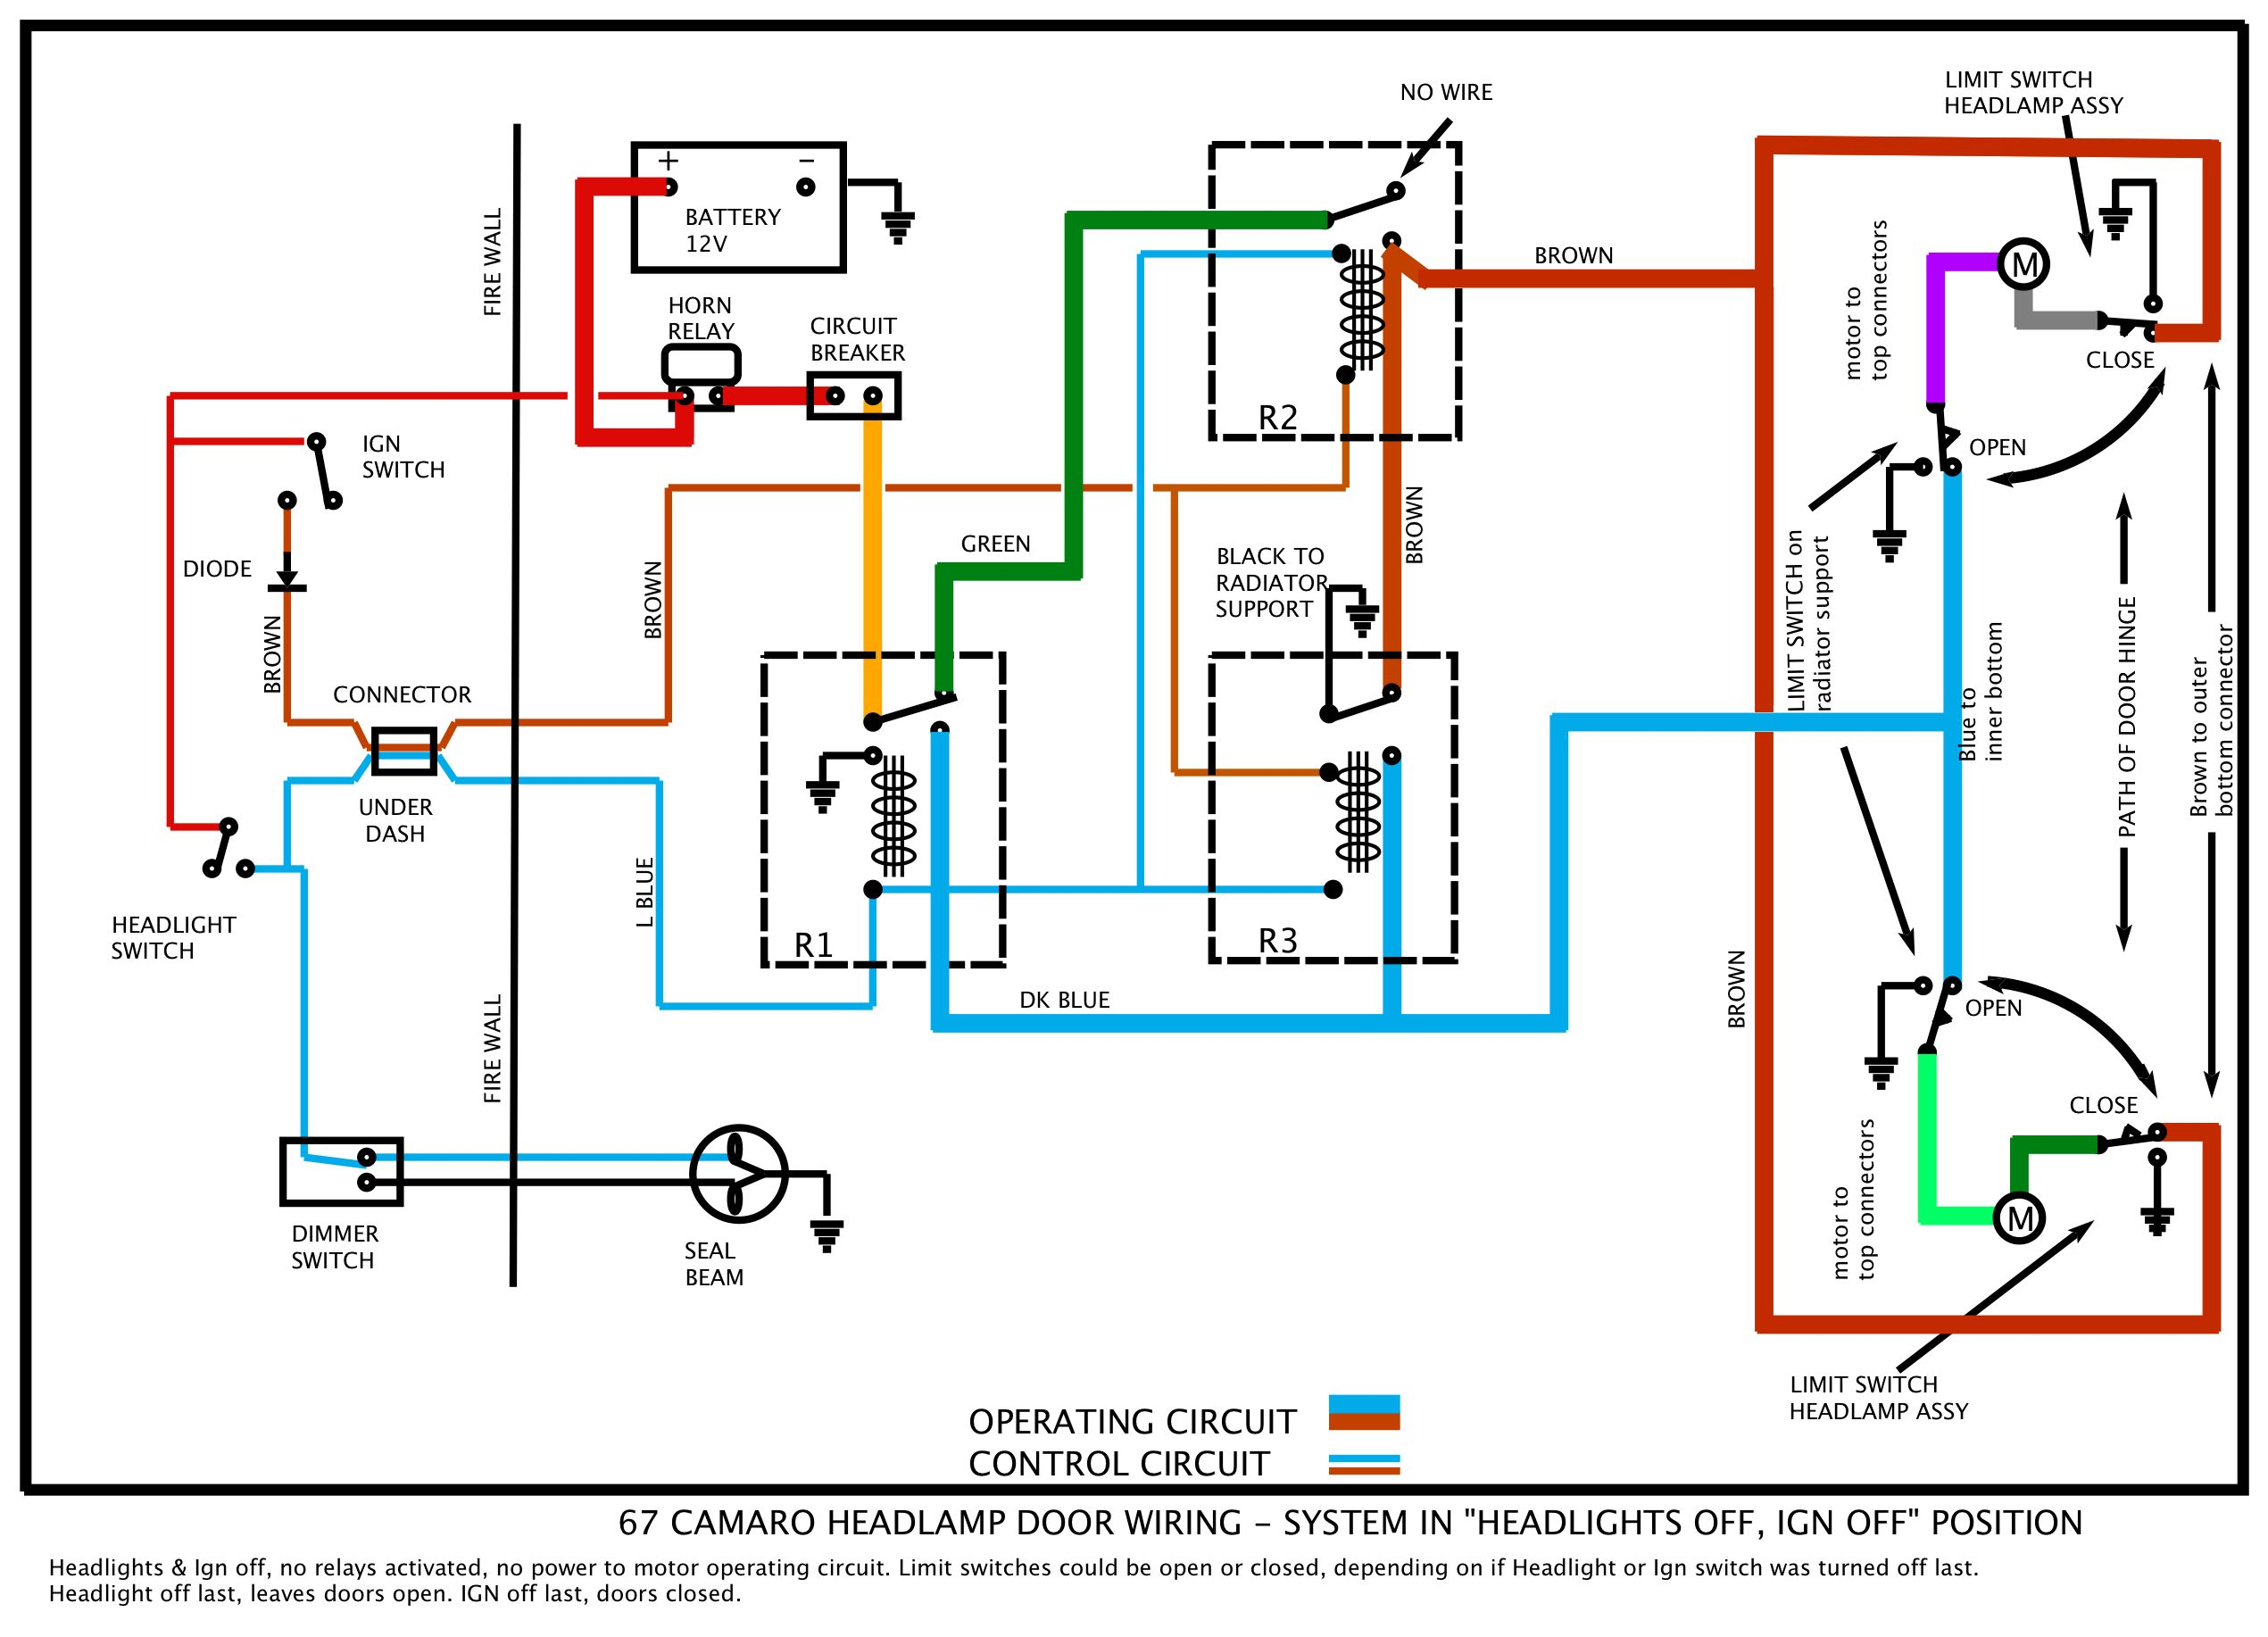 1968 Camaro Engine Wiring Harness Diagram - Wiring Diagram Inside on 68 cougar seats, 68 cougar body panels, 68 cougar car, 68 cougar trunk, 68 cougar rear quarter panel, 68 cougar wiring diagram,